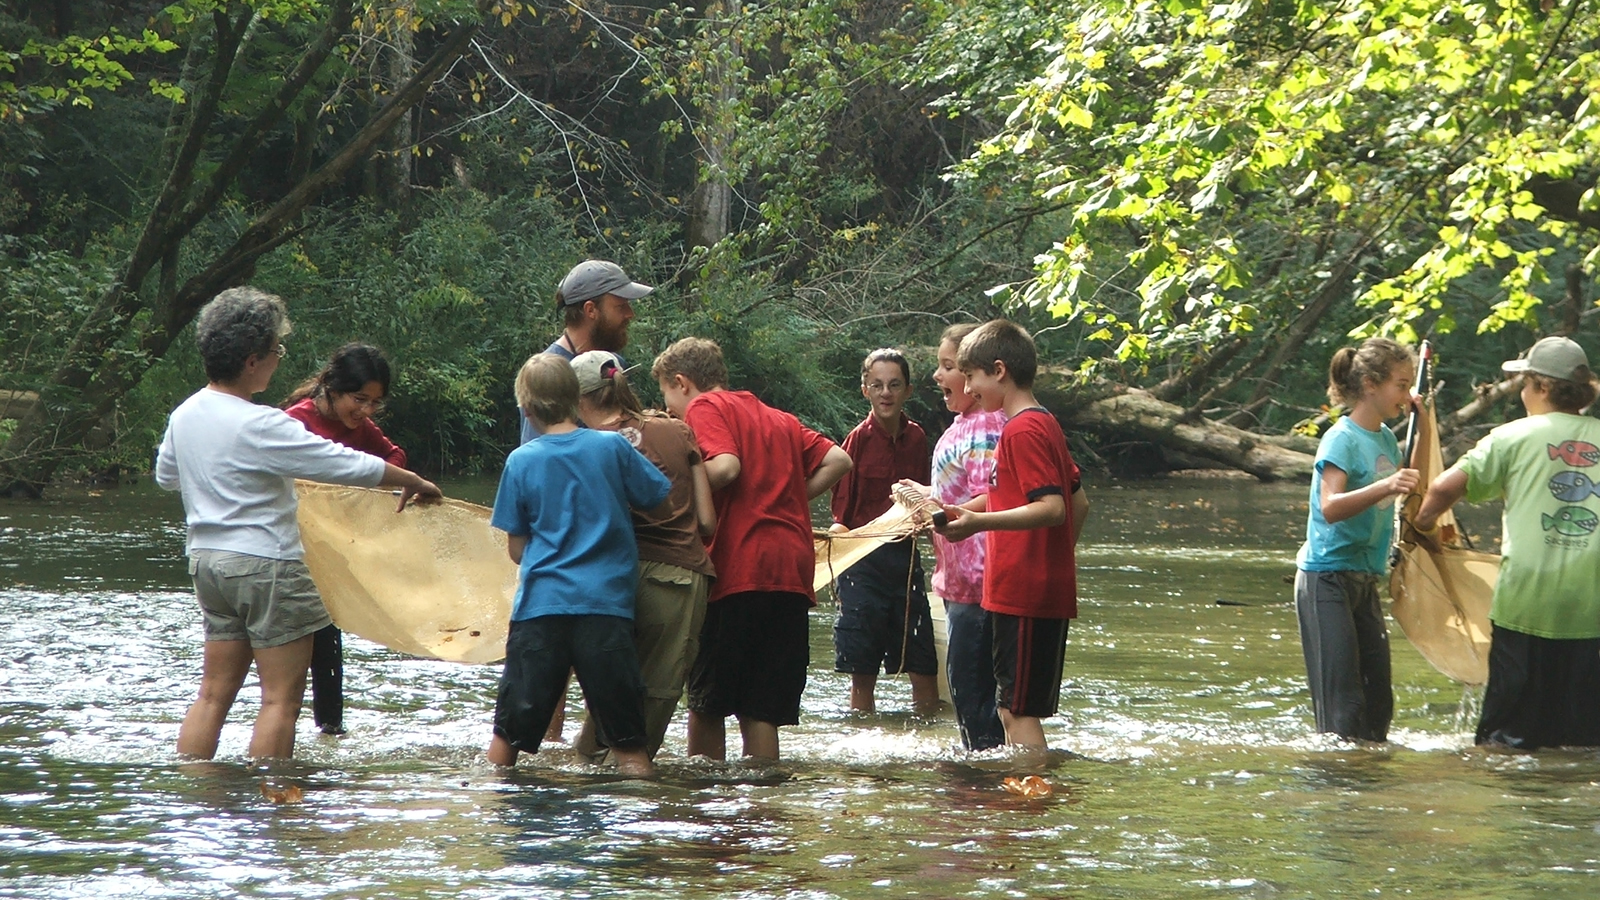 <h4>CLEAN WATER NETWORK</h4><h5>Our Clean Water Network connects more than 250 local and regional watershed protection groups, so they can share ideas and resources, gain expertise, and band together to take on bigger challenges.</h5><em>Gordon Black / Cahaba River Society</em>